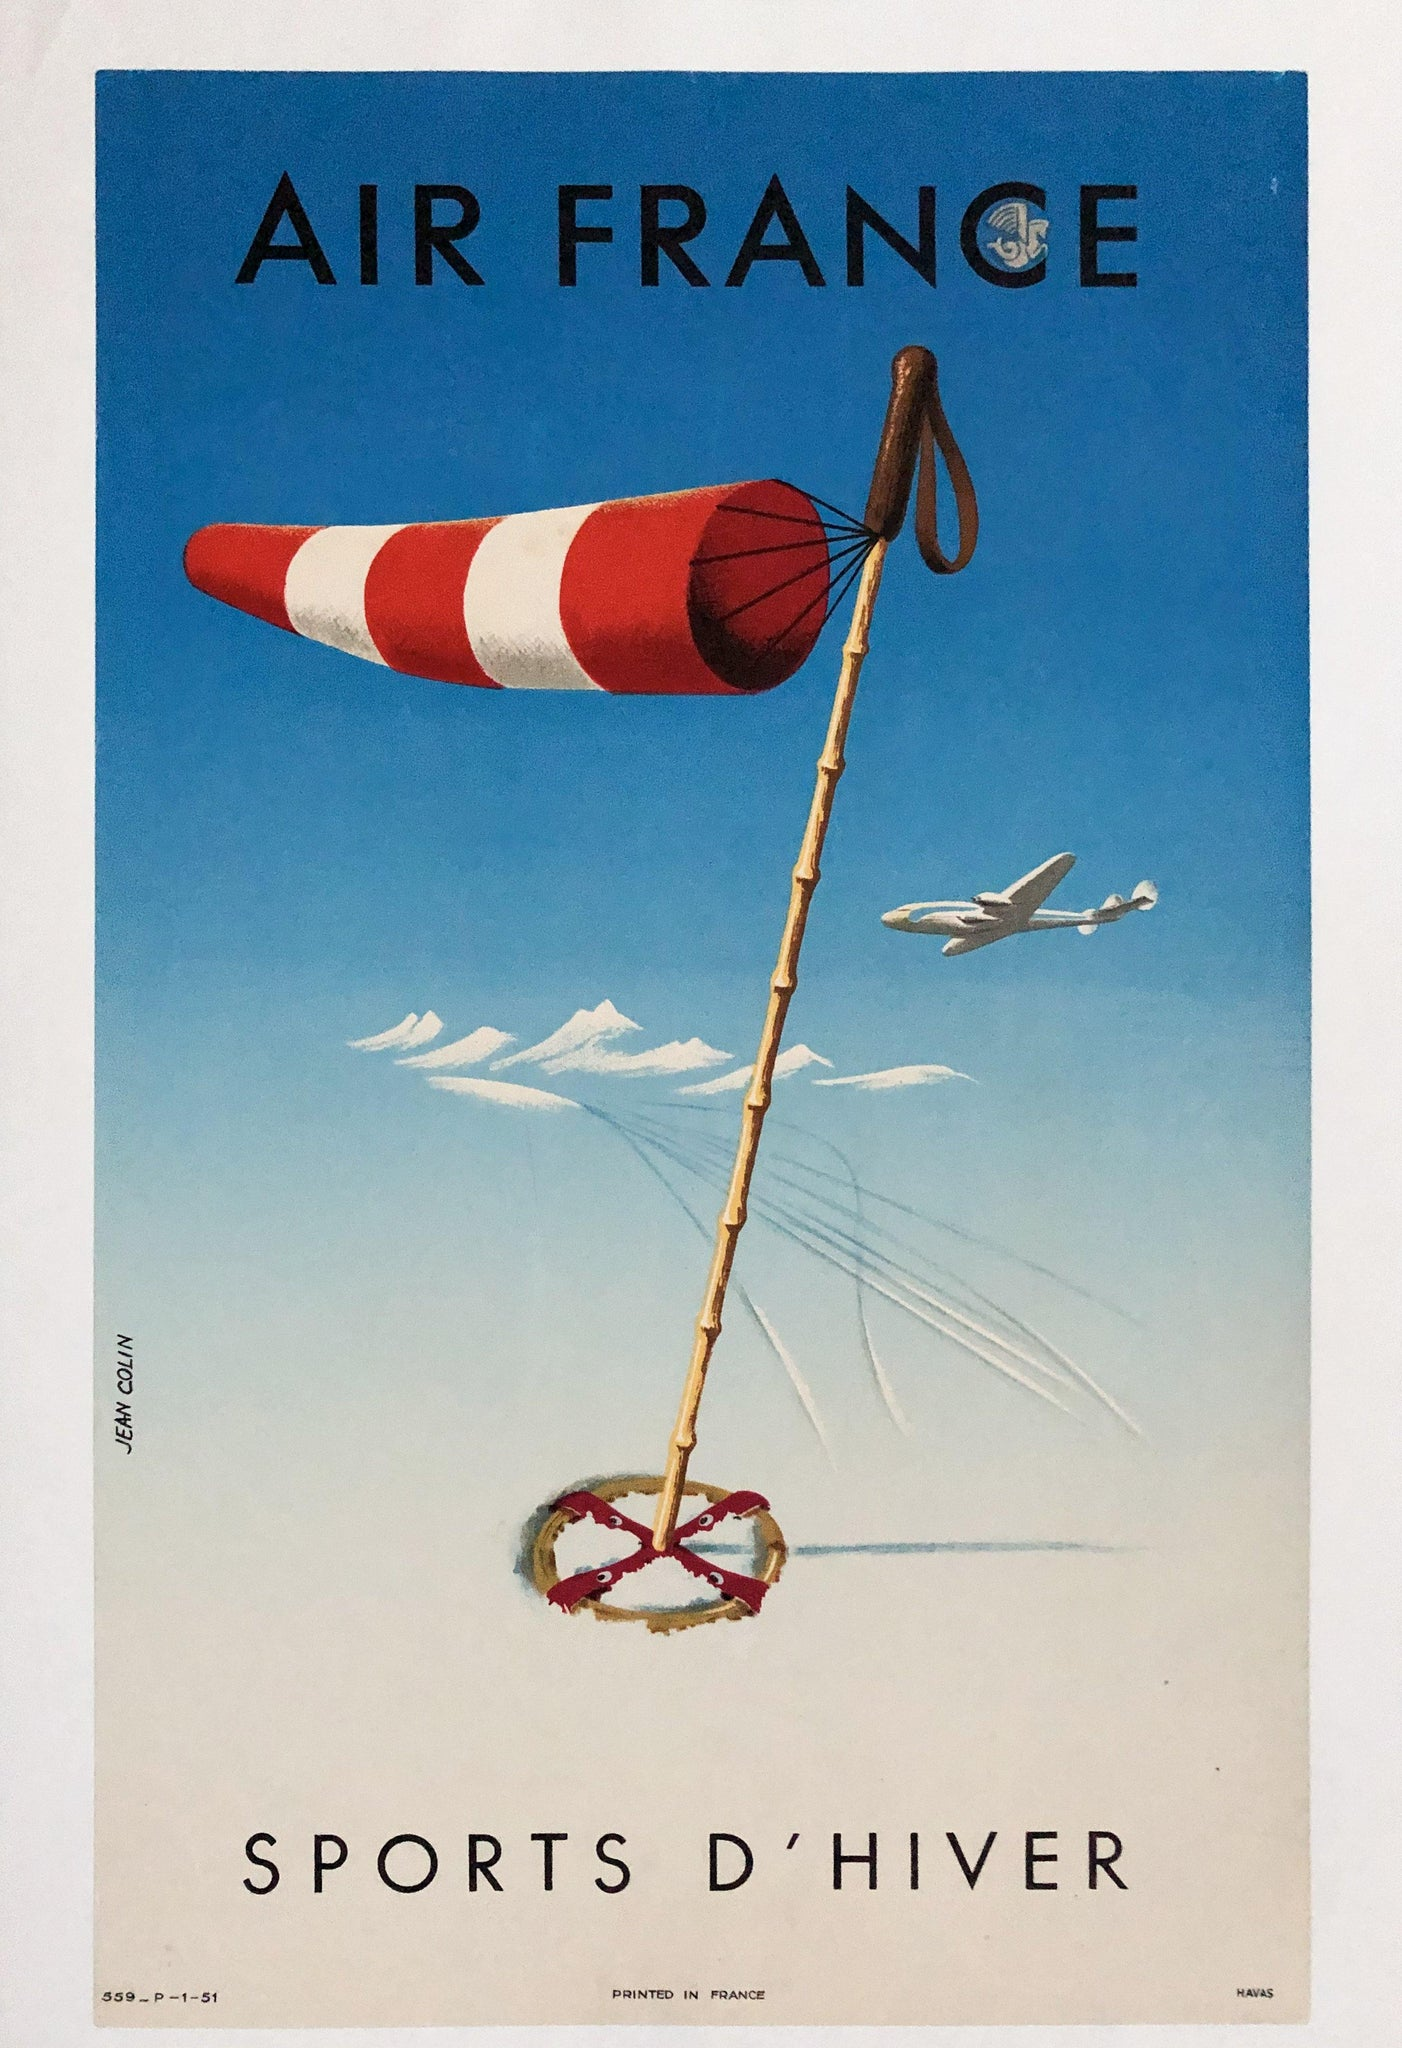 1951 Air France Winter Sports D'Hiver by Jean Colin